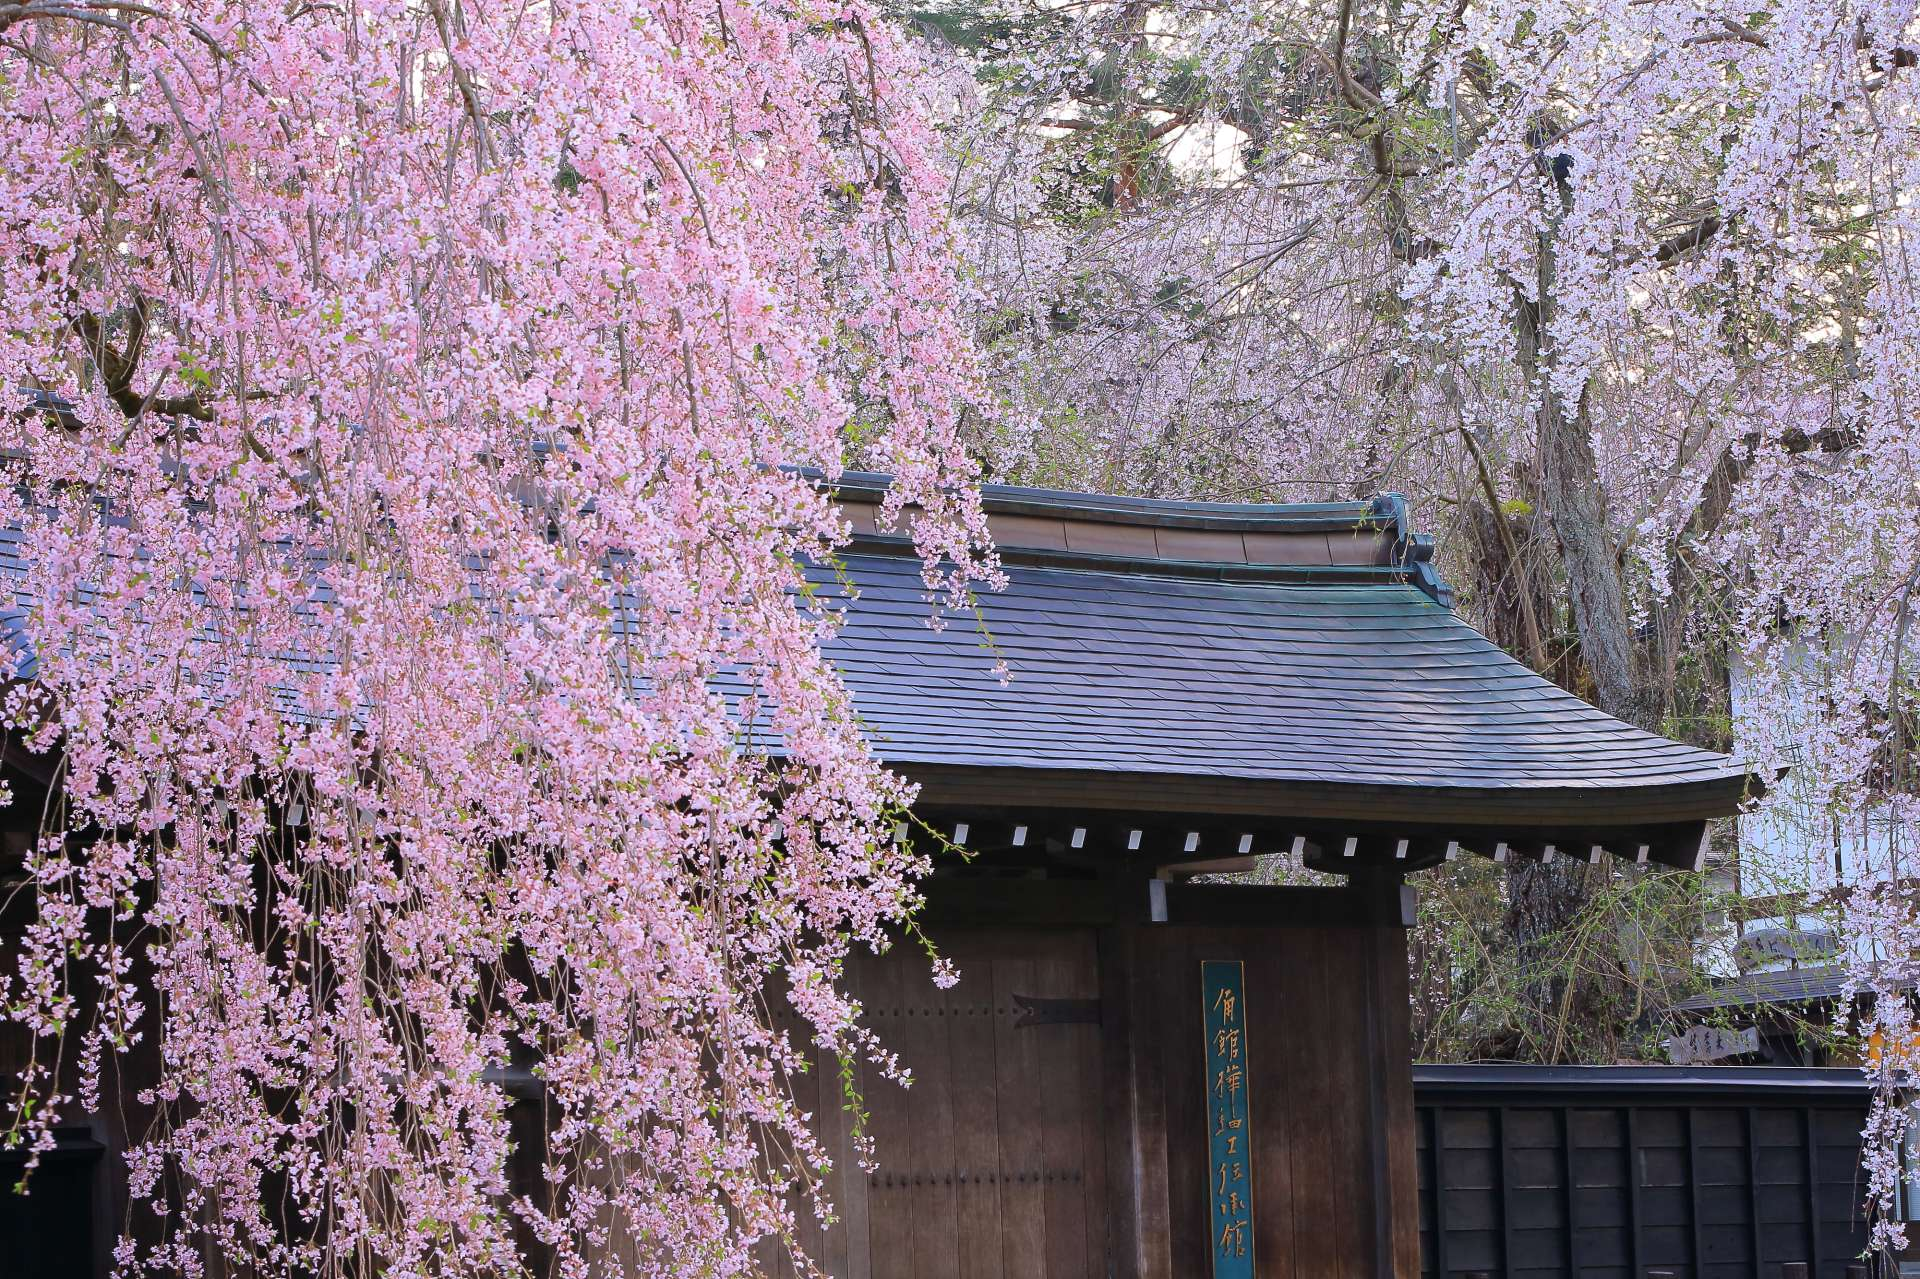 Kakunodate Birch Craft Densho-kan in the flowering season of cherry